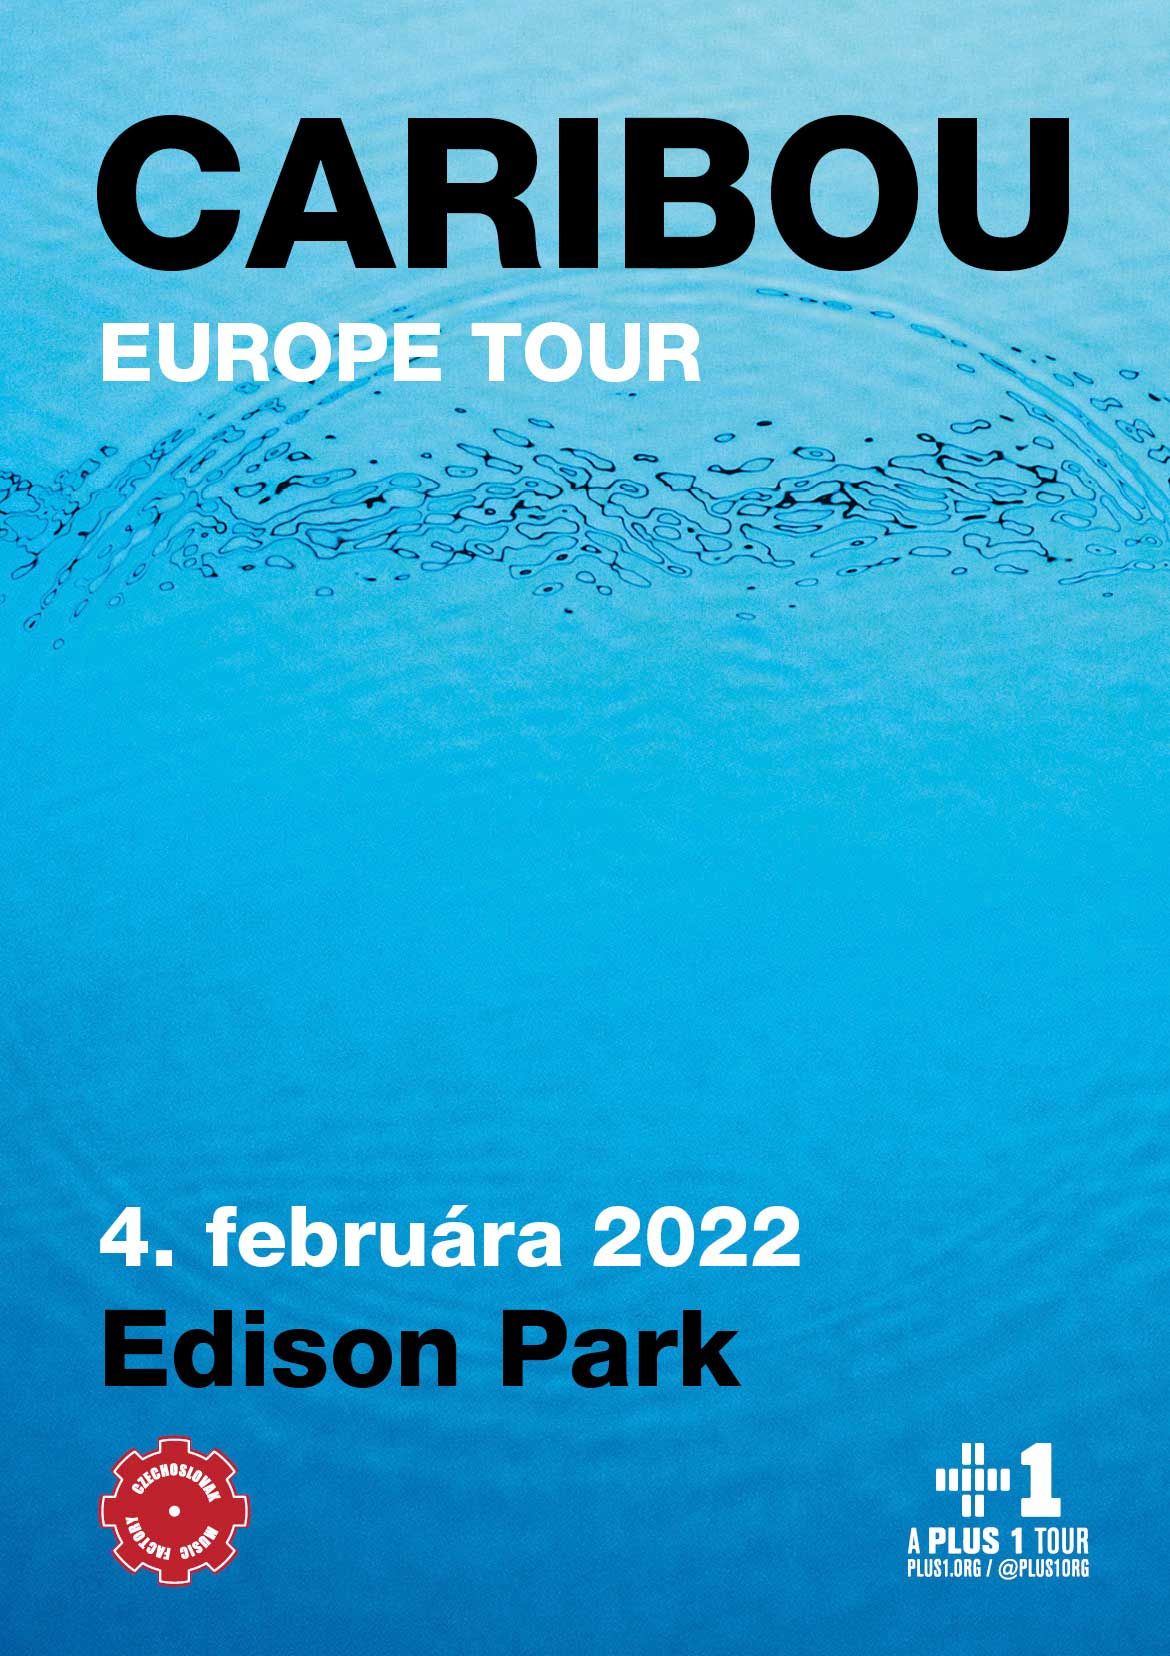 picture CARIBOU EUROPE TOUR